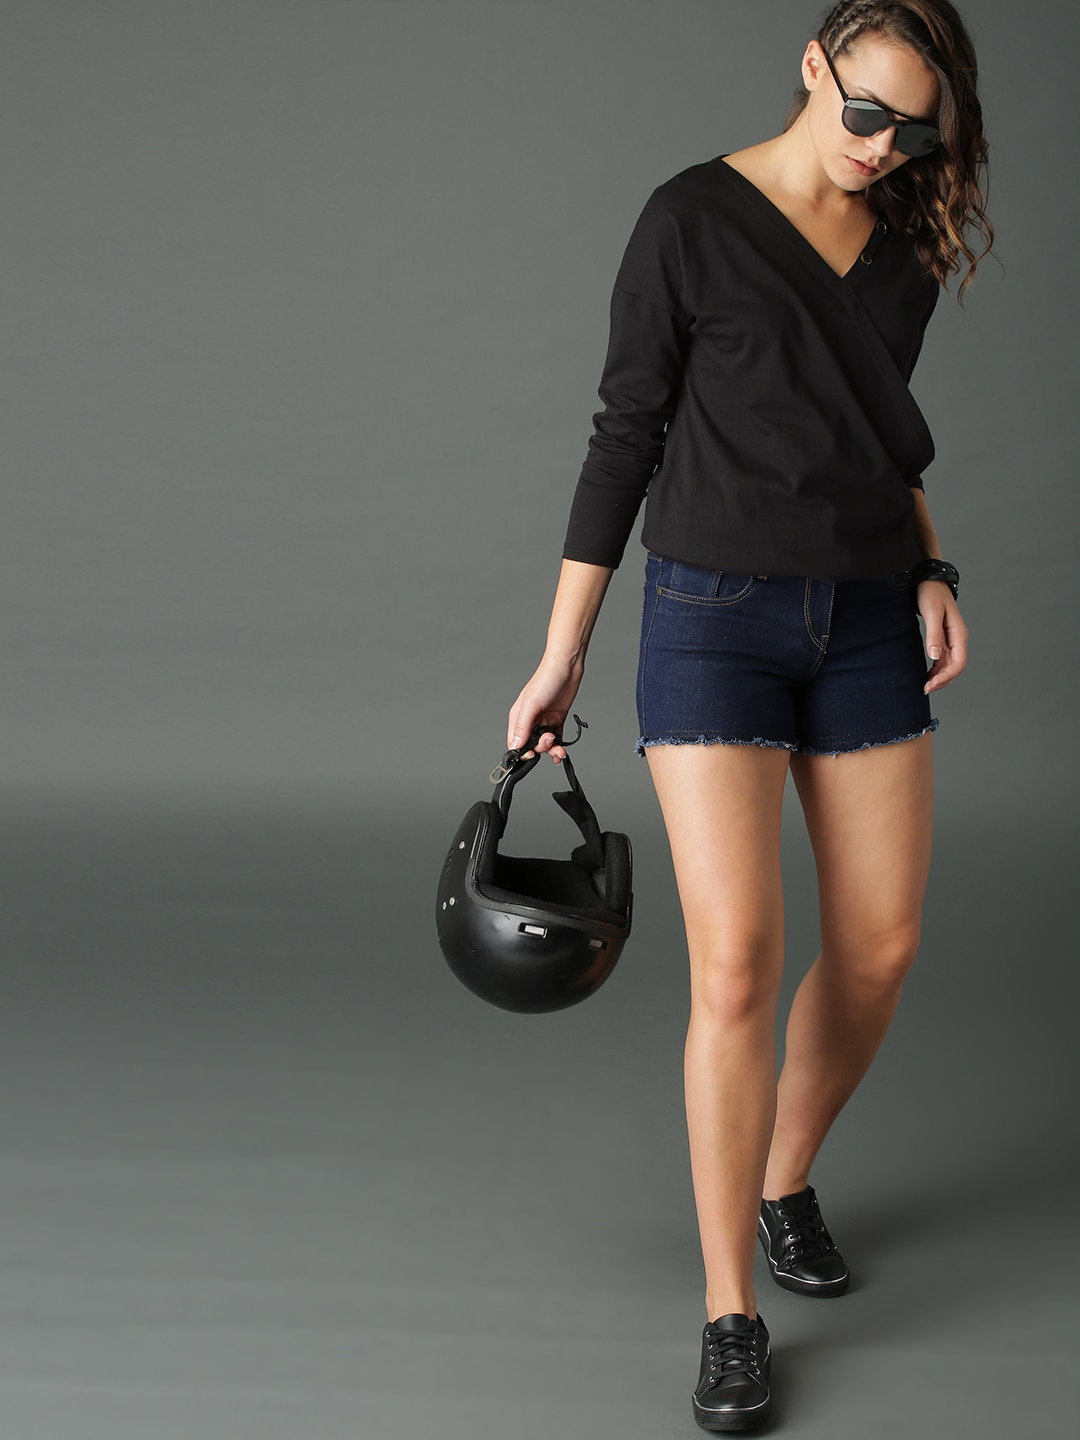 b5245af67645f Wrap Tops - Buy Wrap Tops online in India